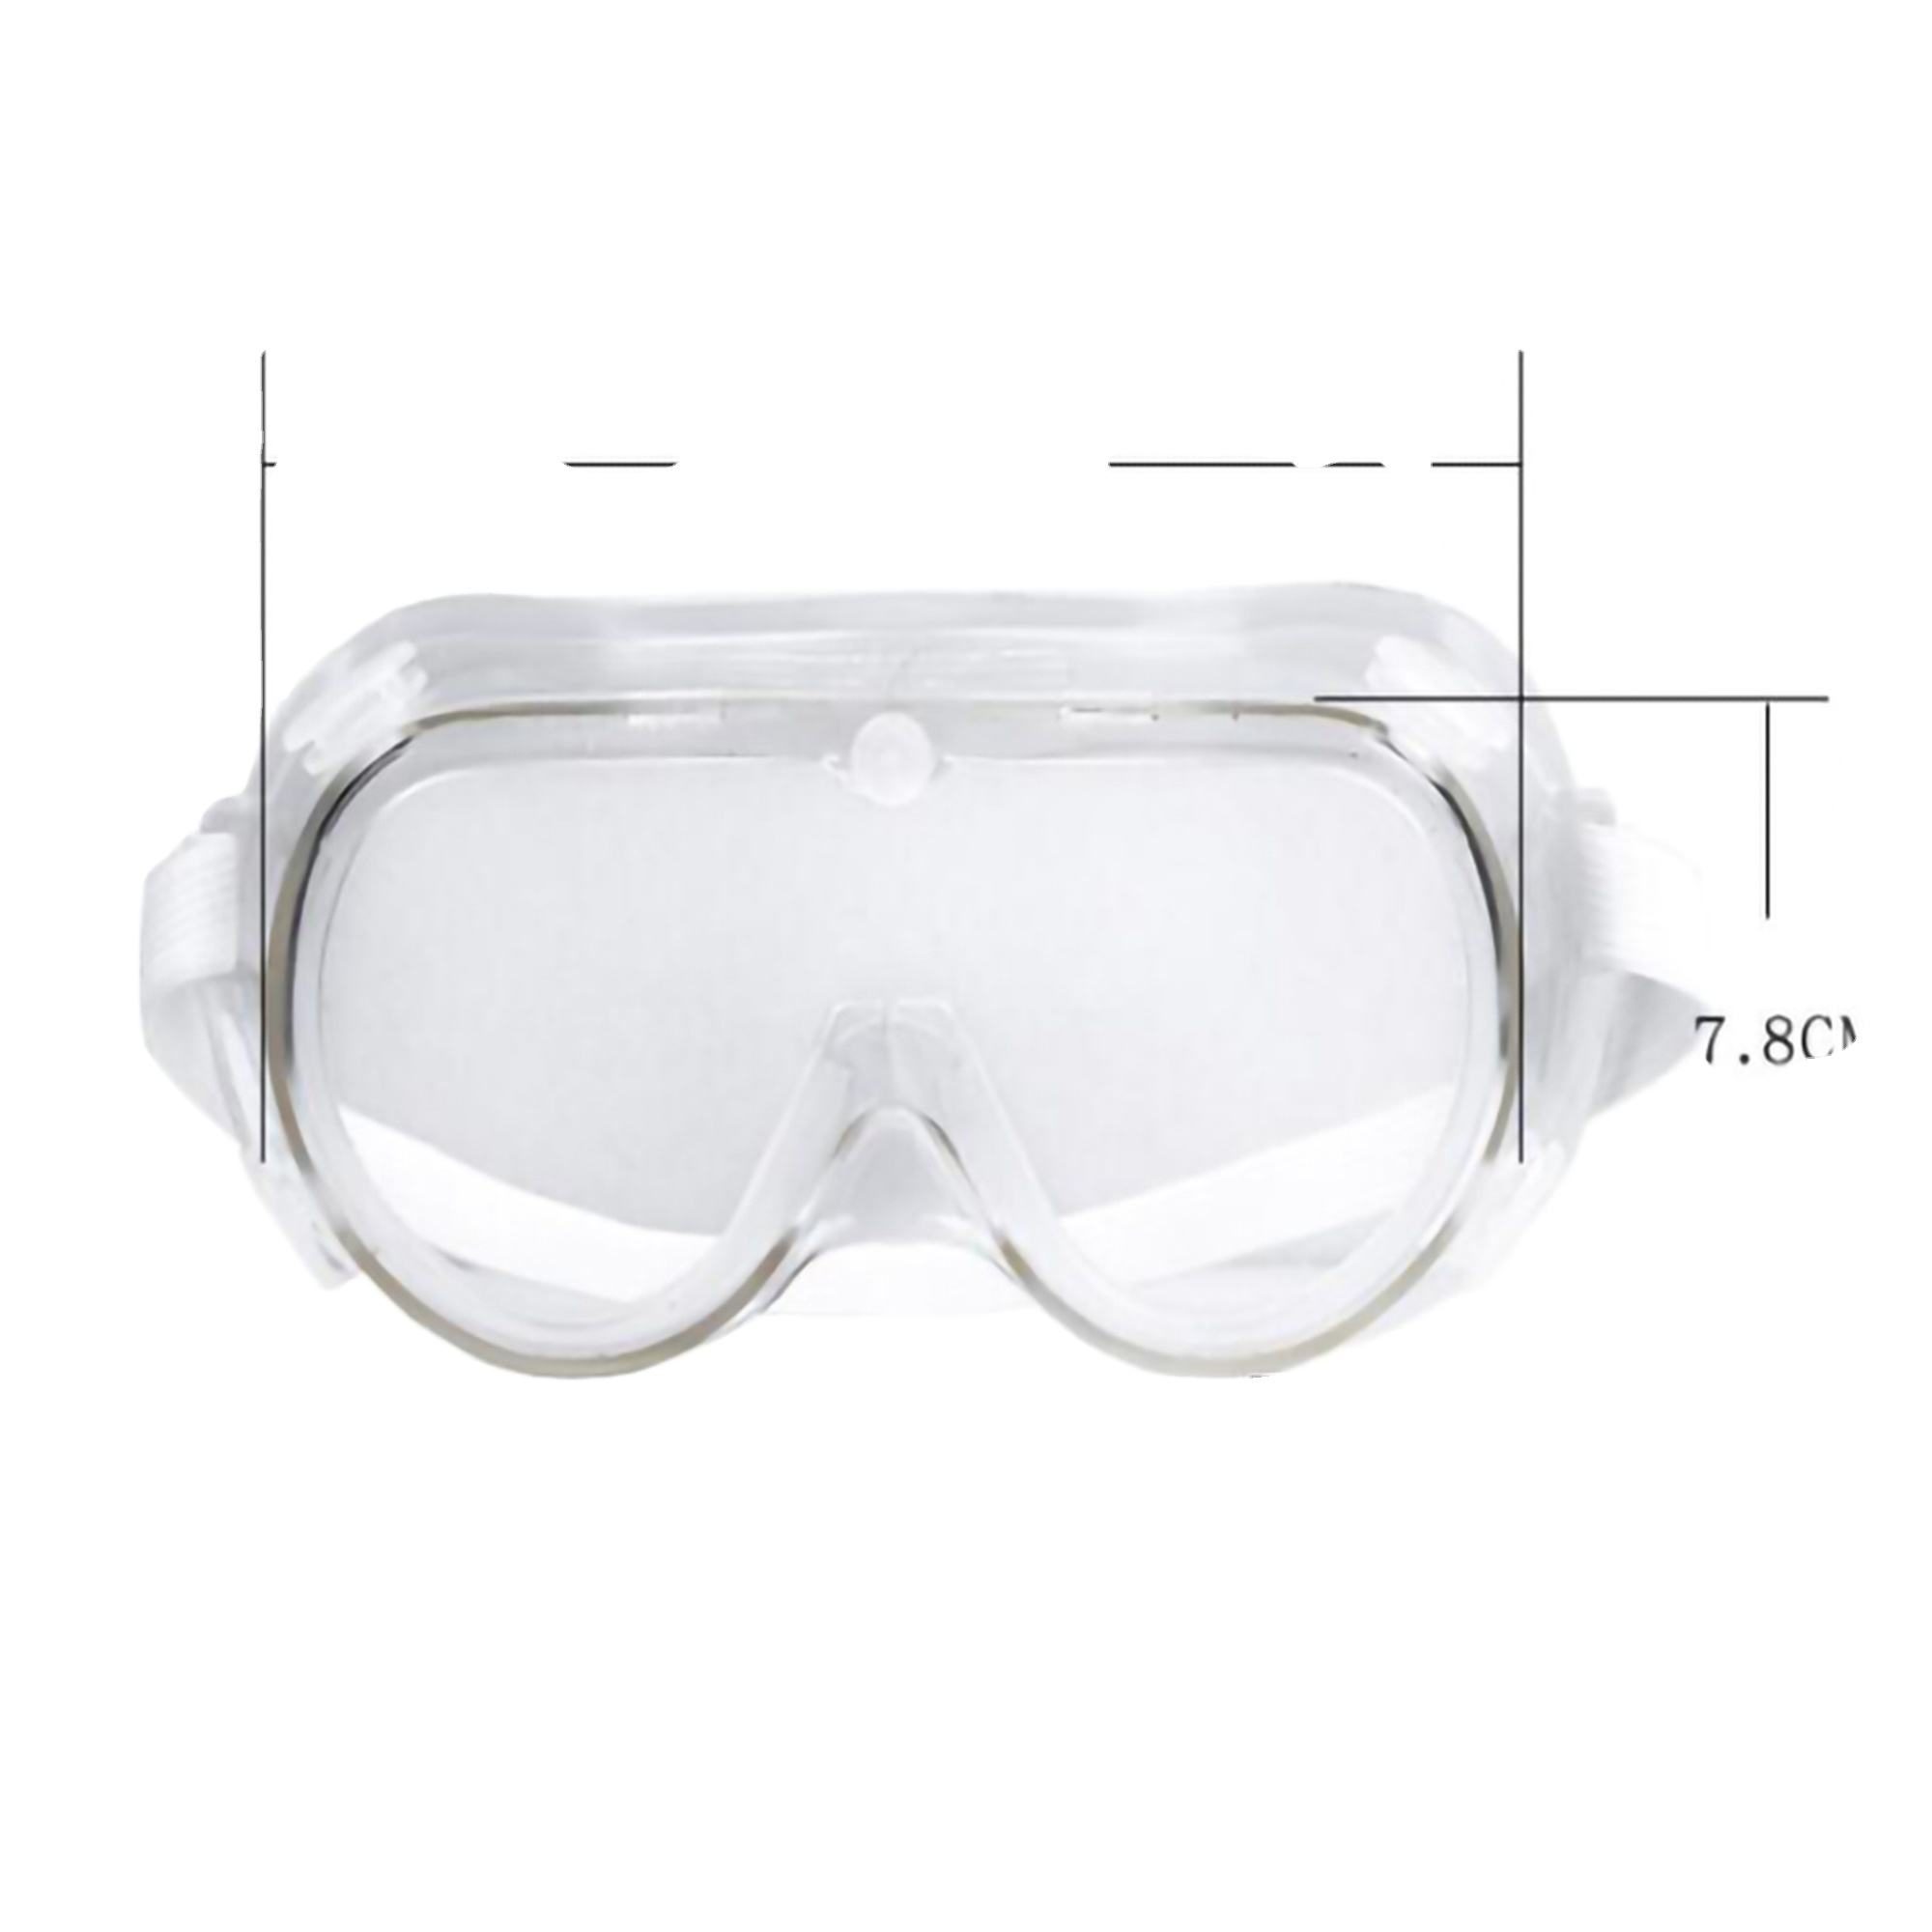 3R OEM chemical resistant goggles medical protective medical goggles